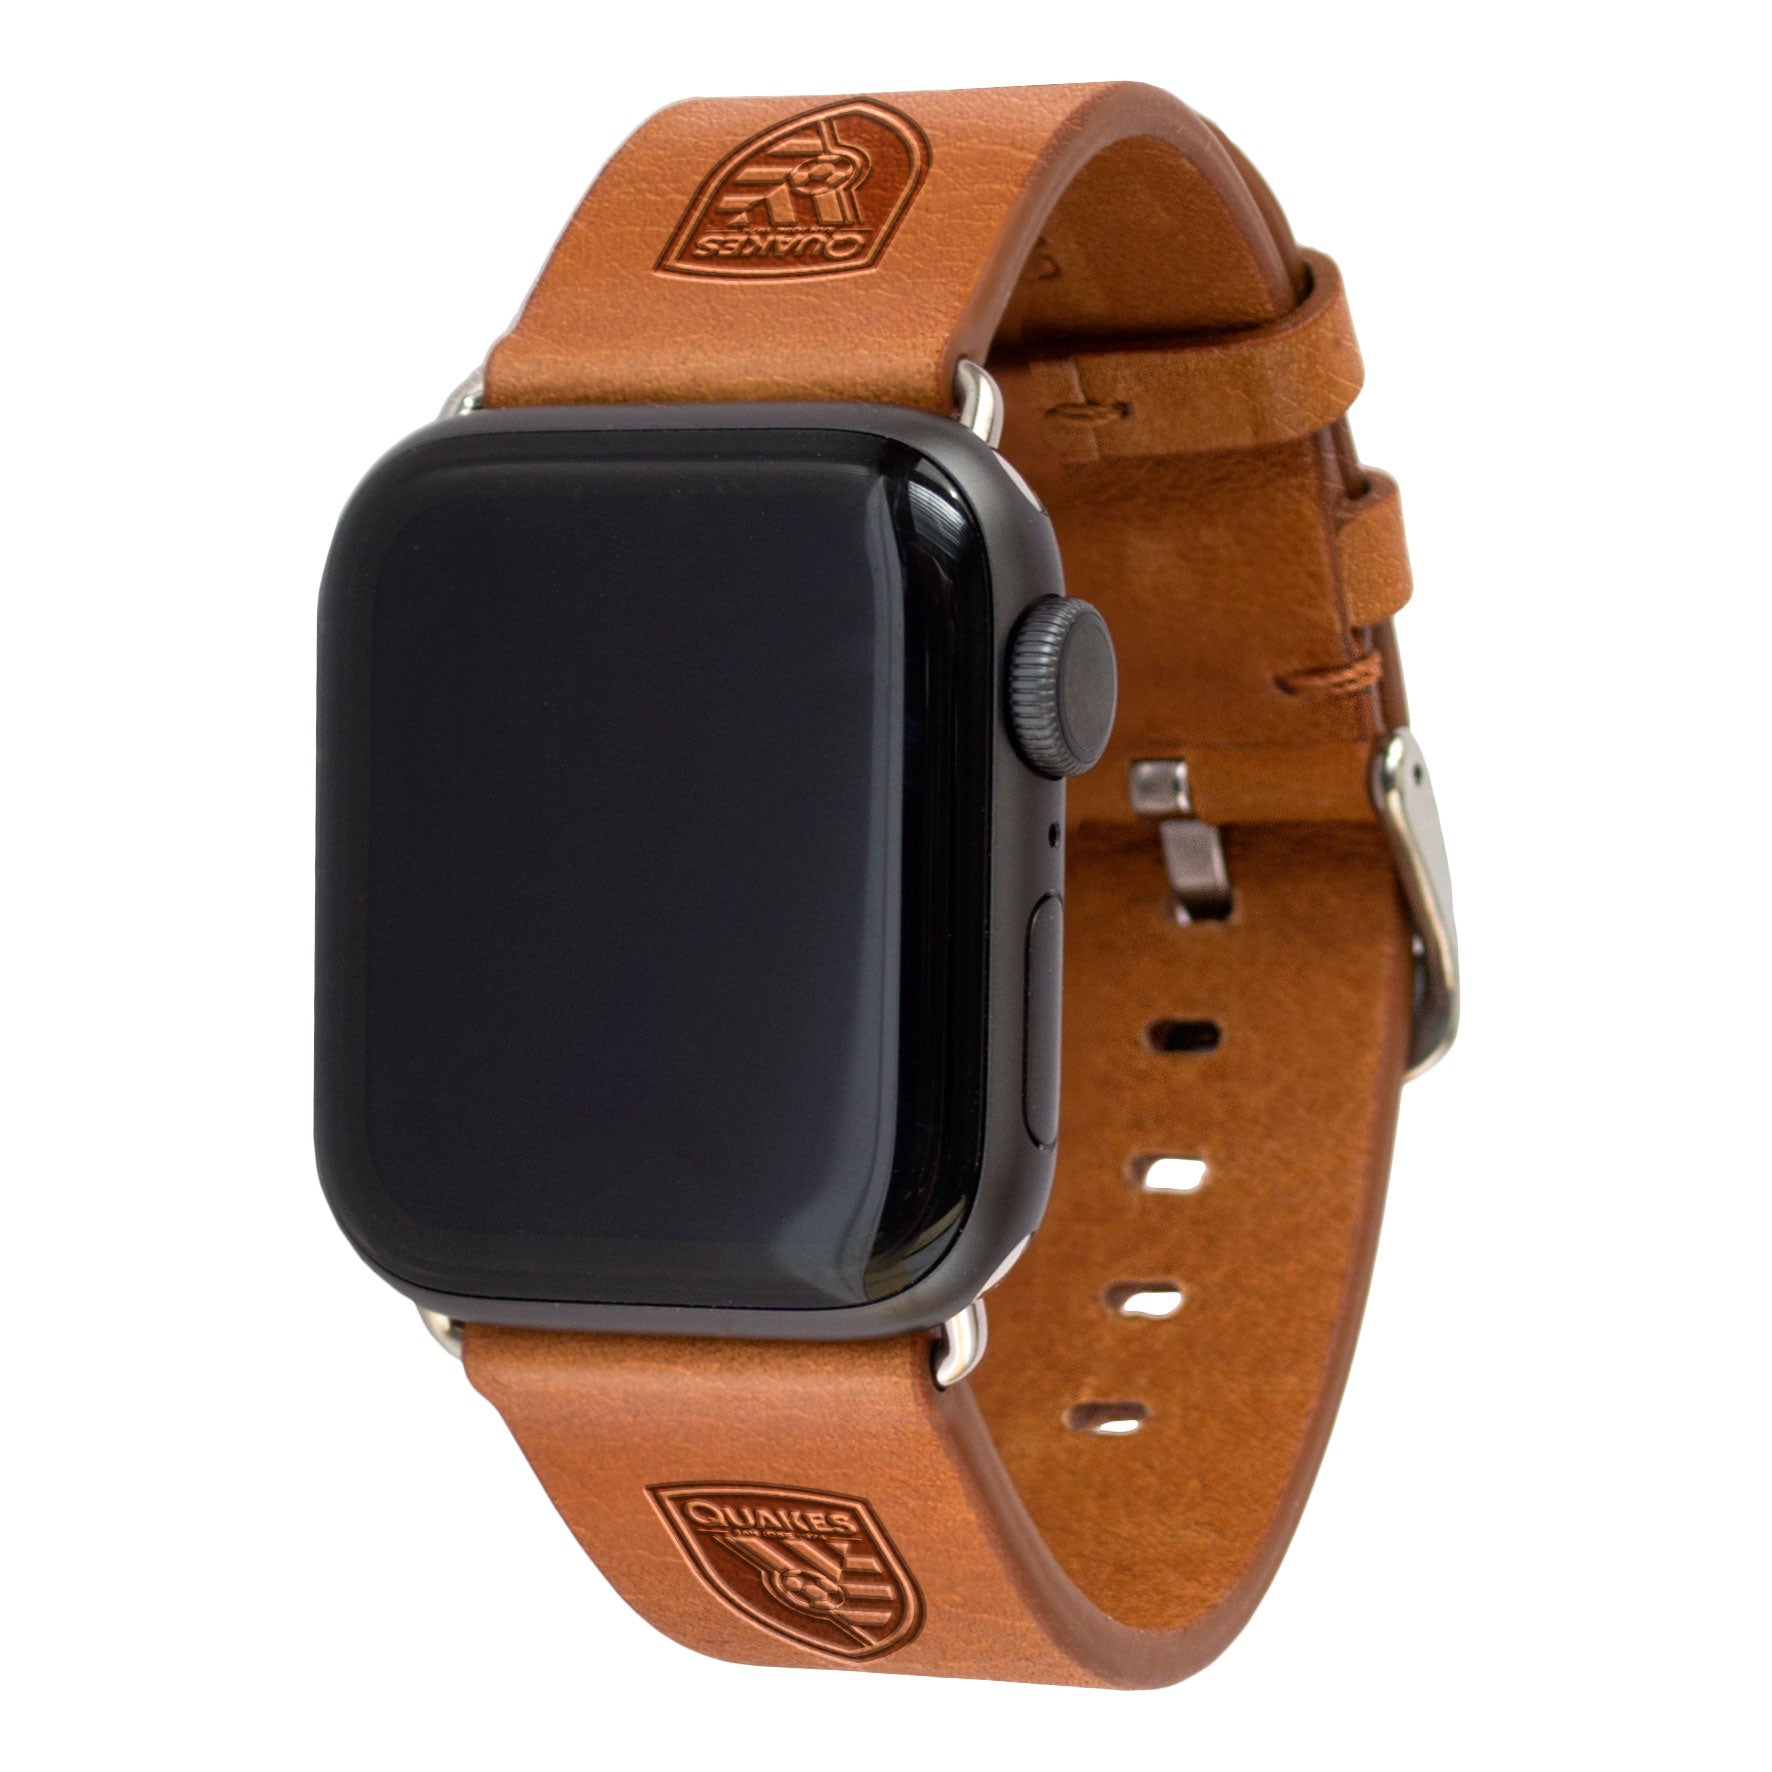 San Jose Earthquakes Leather Apple Watch Band